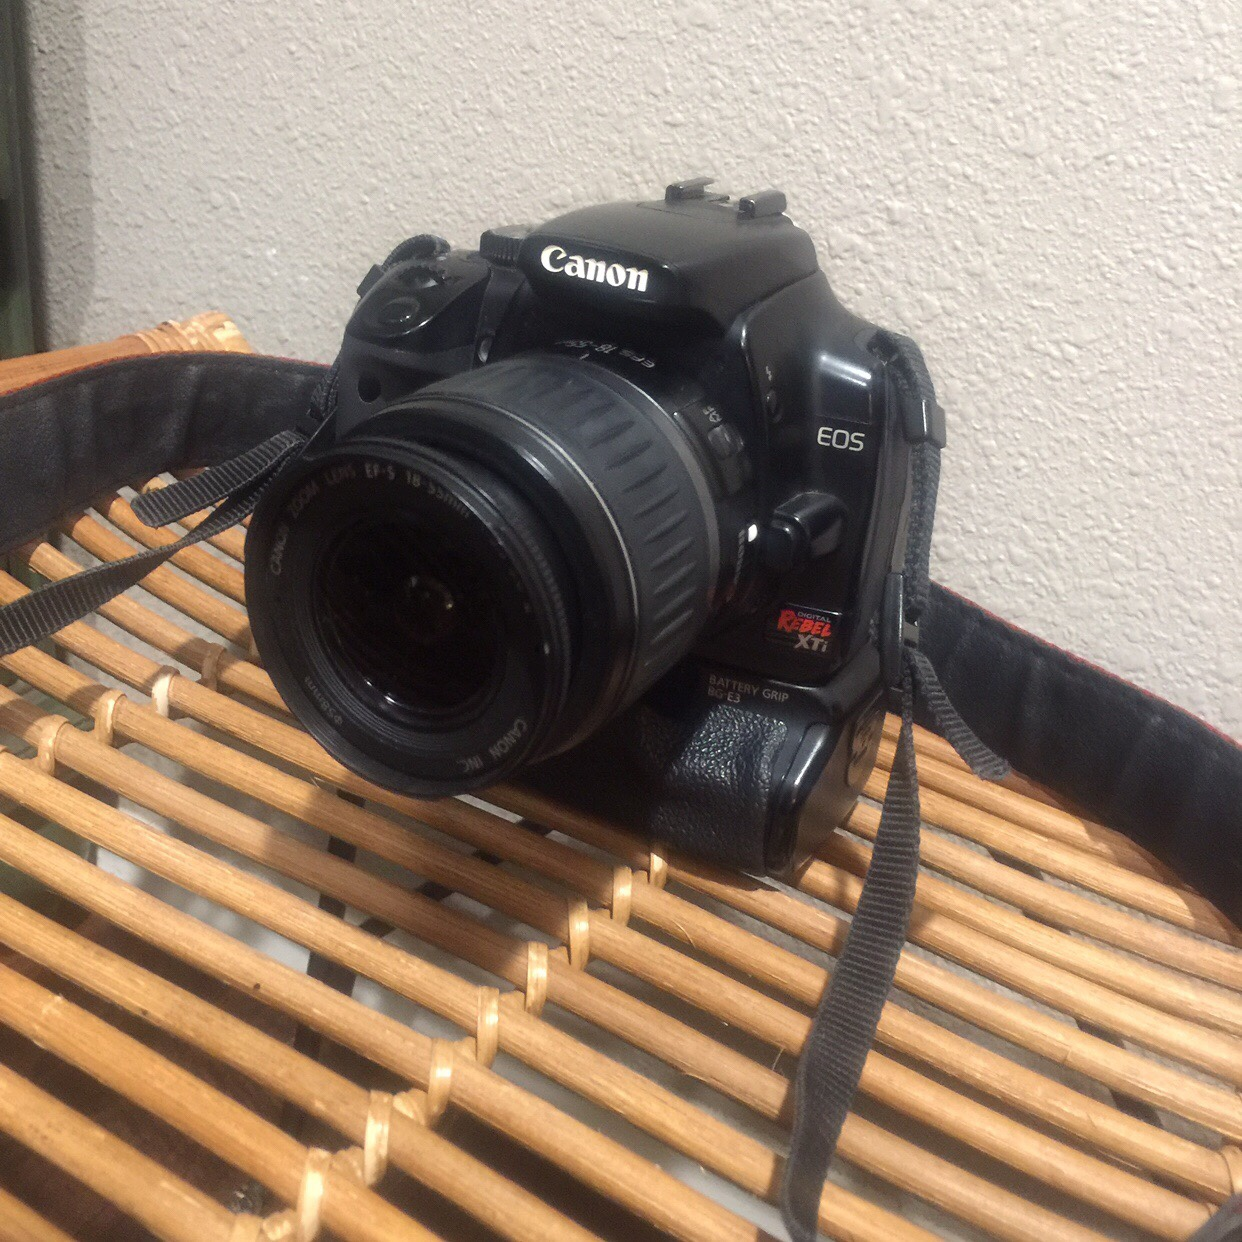 Canon rebel xti in good condition comes with battery    - Depop